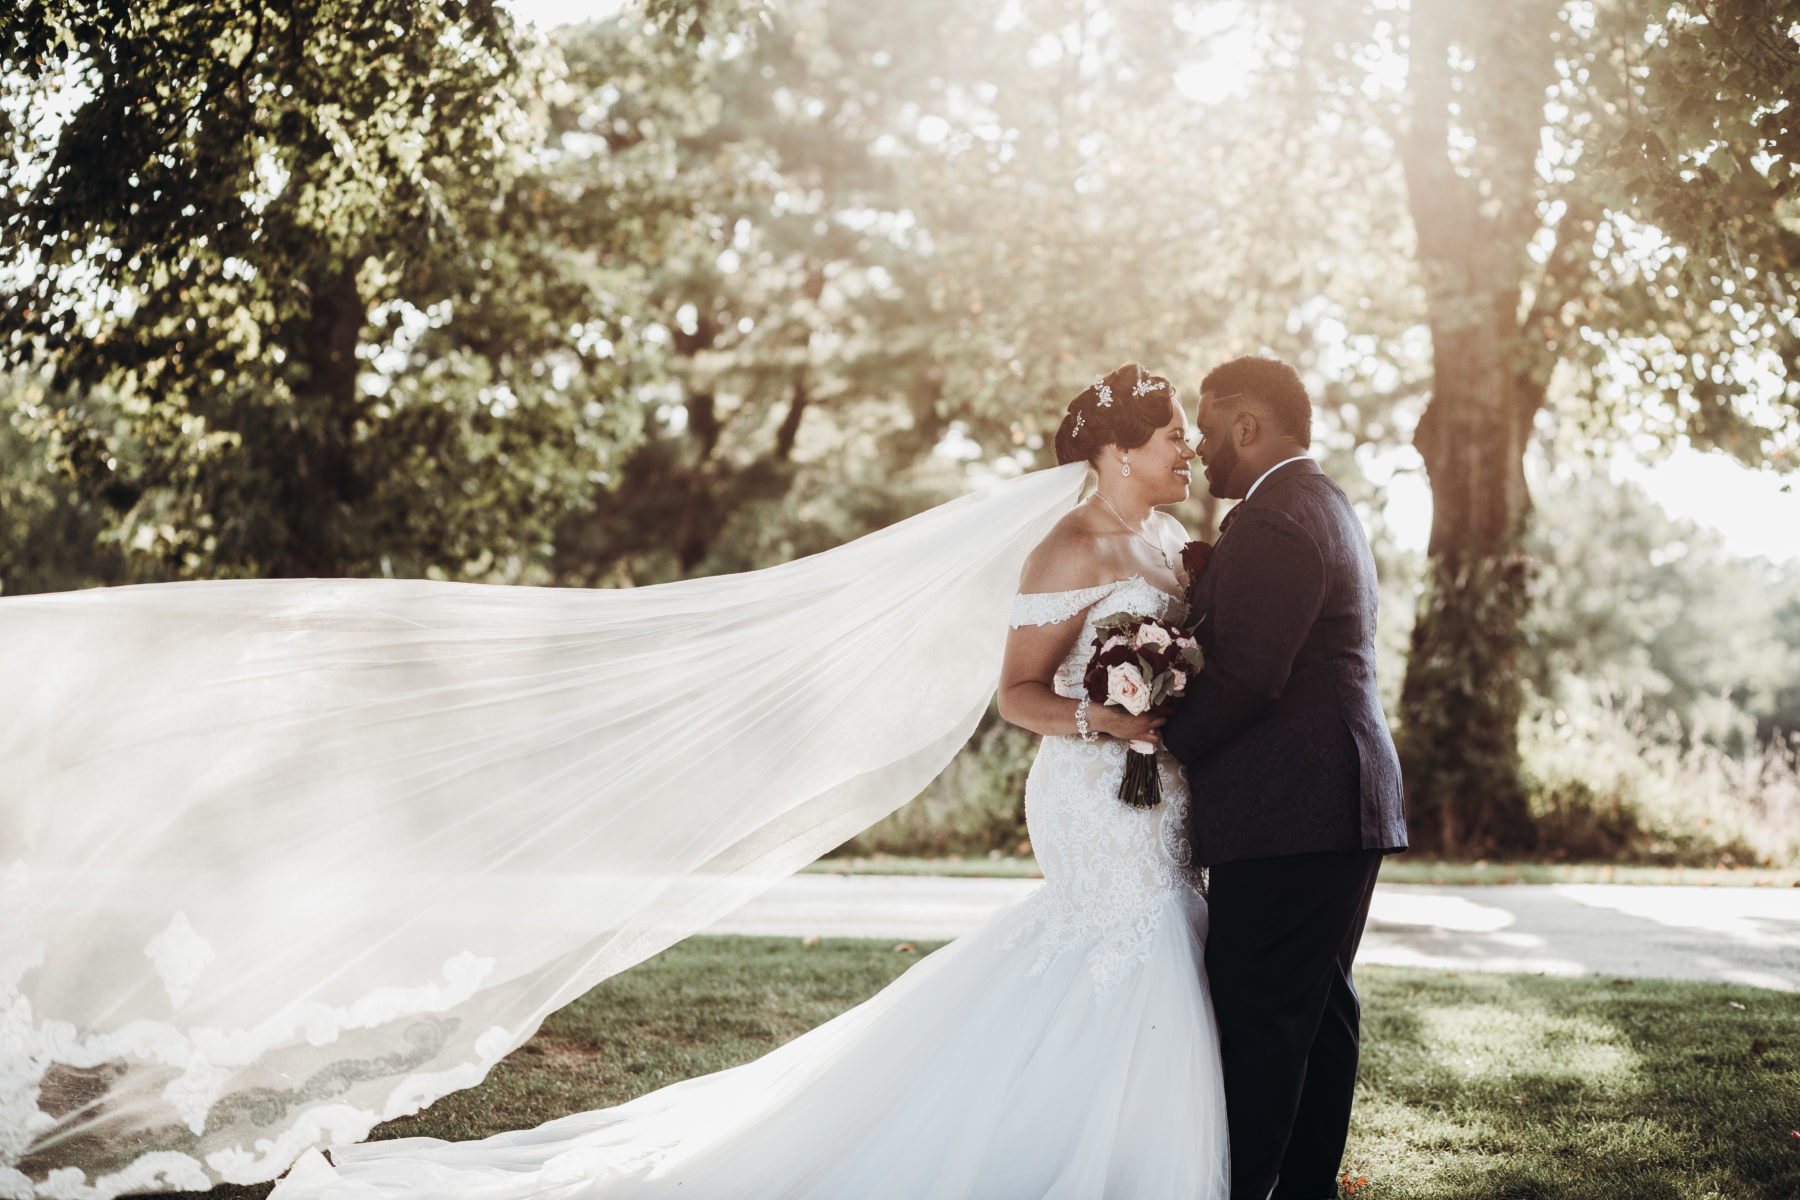 Luxurious Stone Rivers Country Club Wedding featured on Nashville Bride Guide